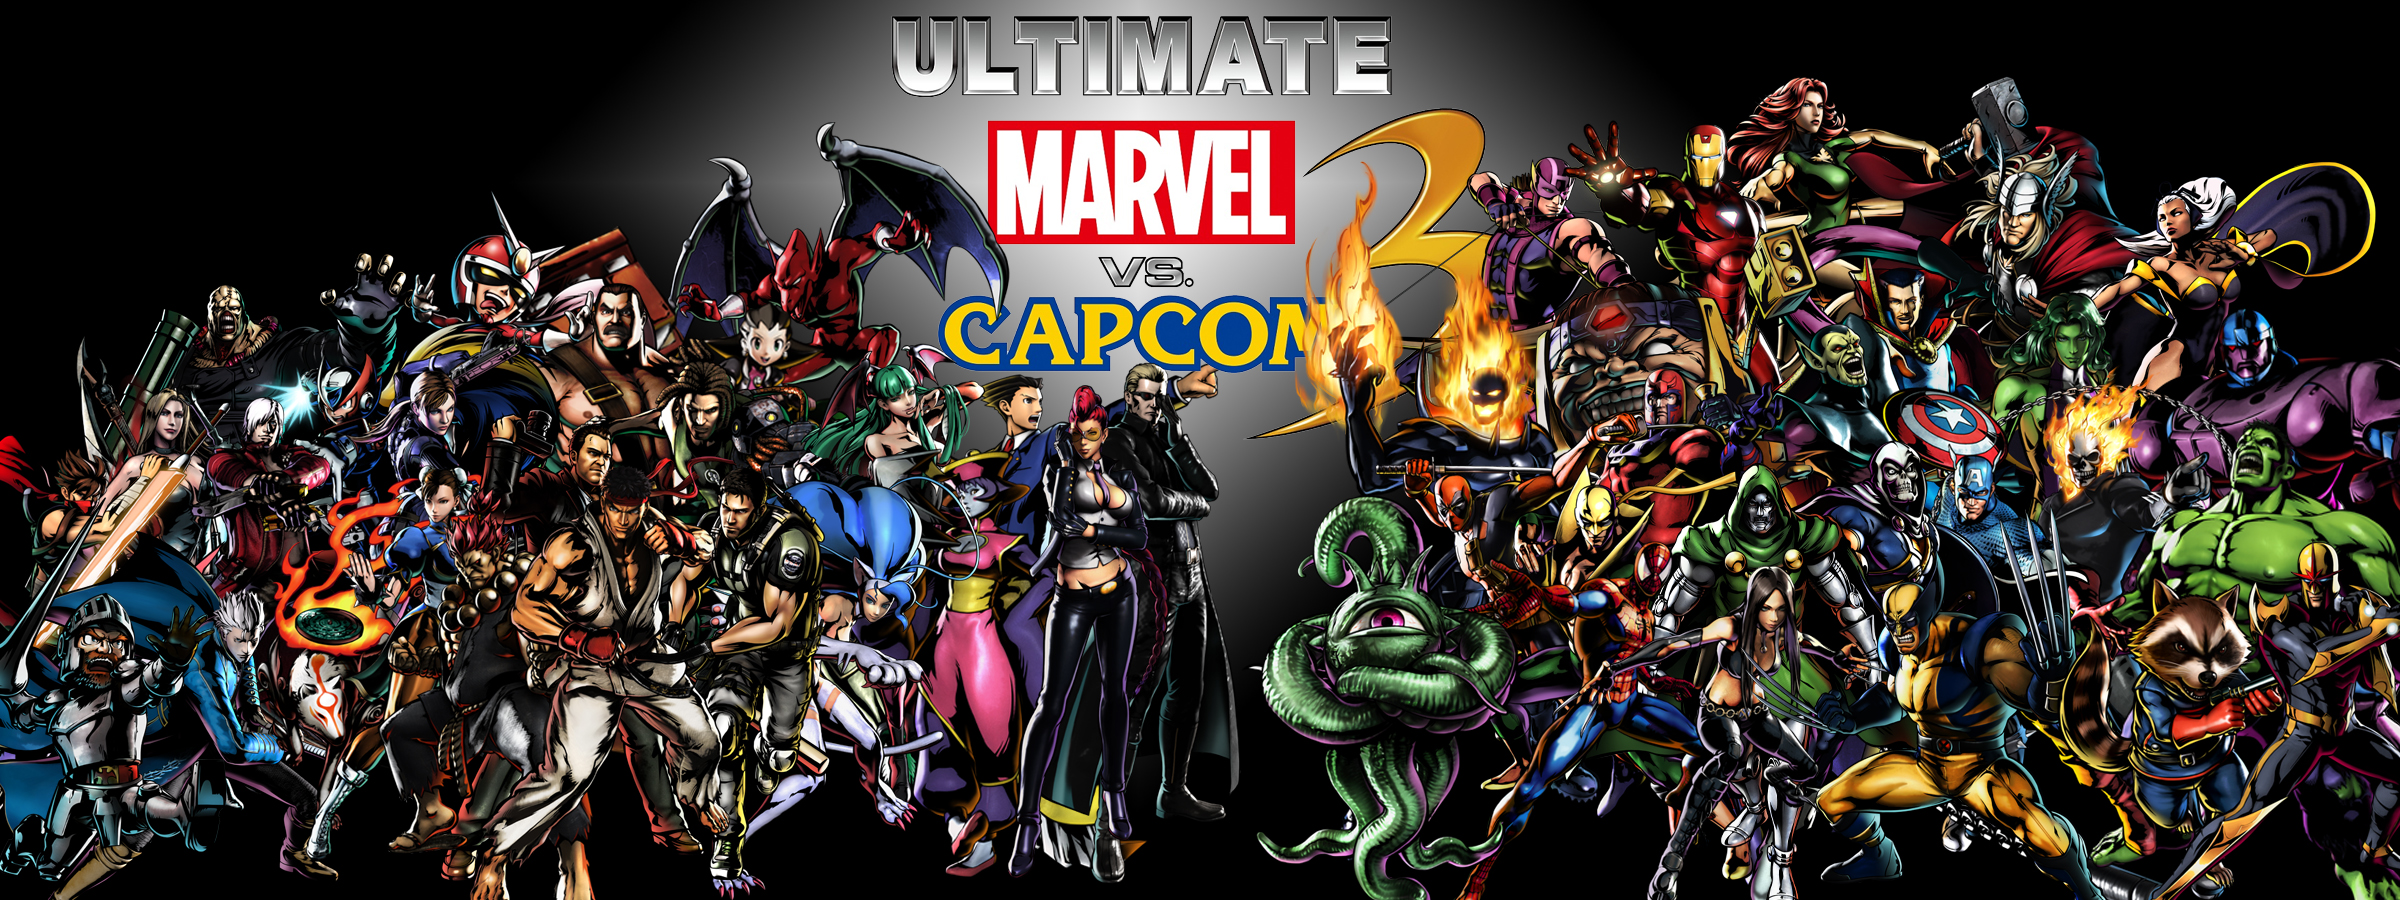 Ultimate Marvel vs. Capcom 3 by PacDuck on DeviantArt | 2400 x 900 jpeg 1947kB